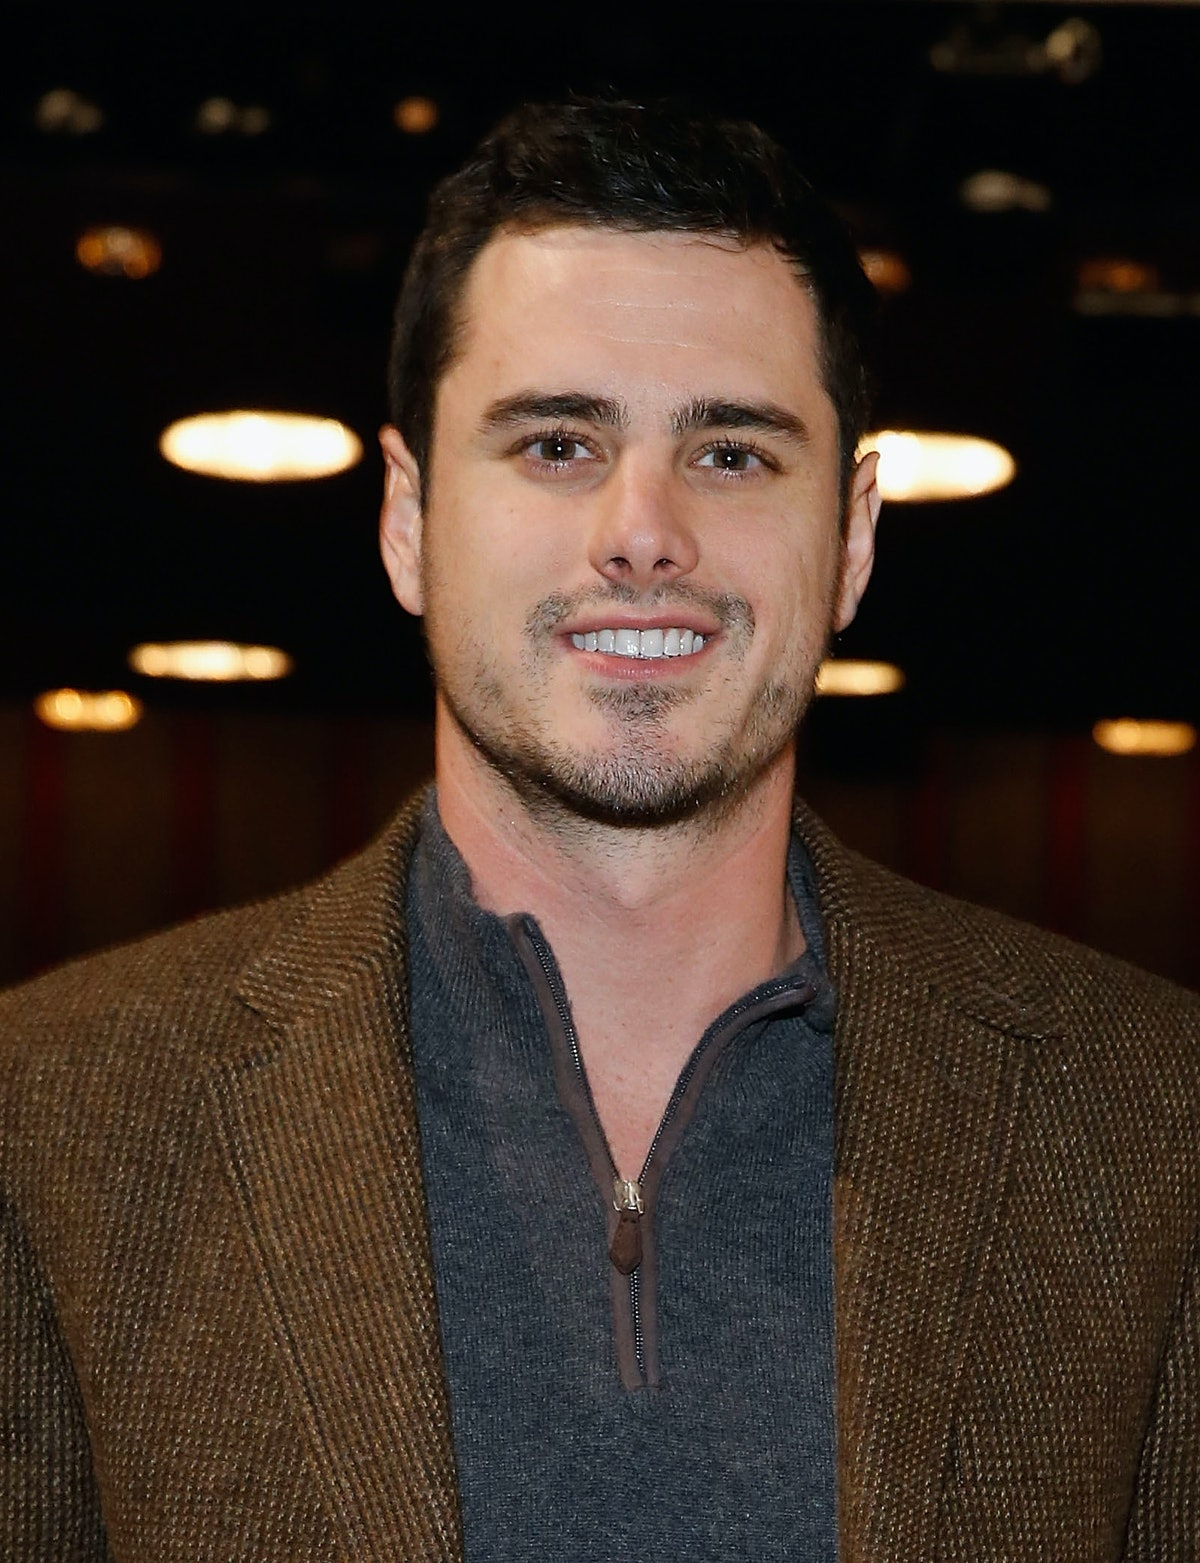 Ben Higgins Is Excited For Colton To Be The Bachelor For Multiple Reasons